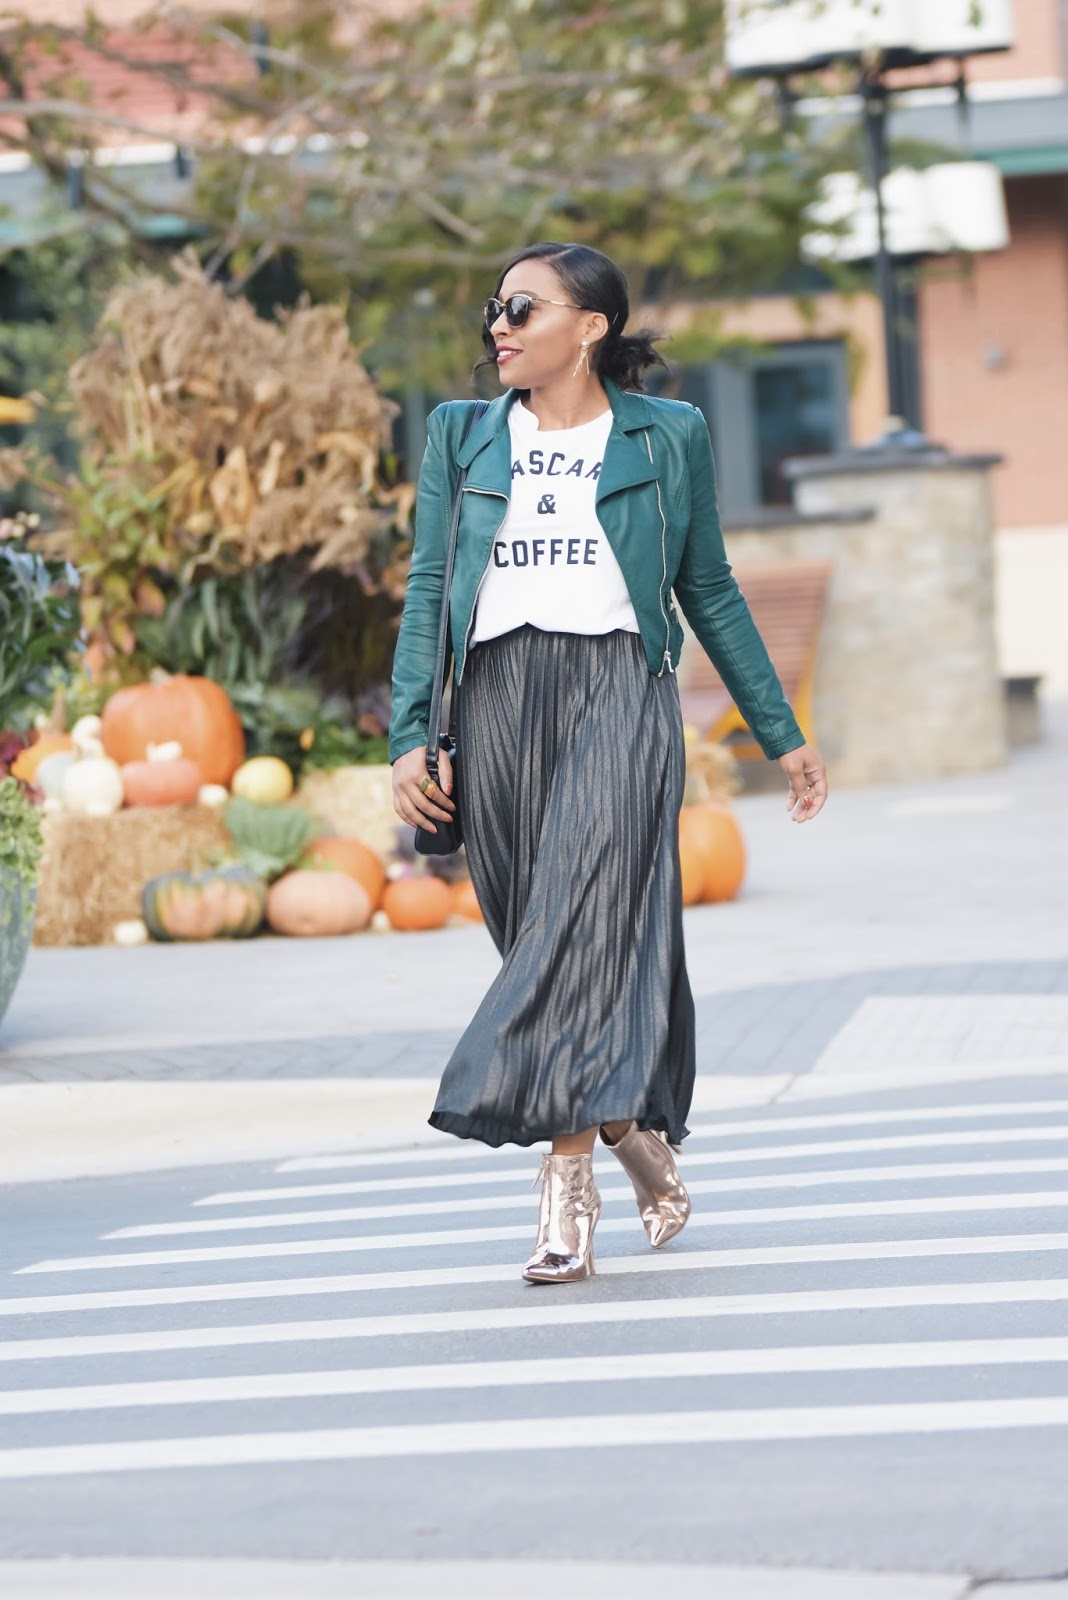 Fall outfits, pleated skirt, moto jacket, amiclubwear shoes, streetstyle, blogger outfits, october, pumpkins, armandhugon, latina bloggers, graphic tee